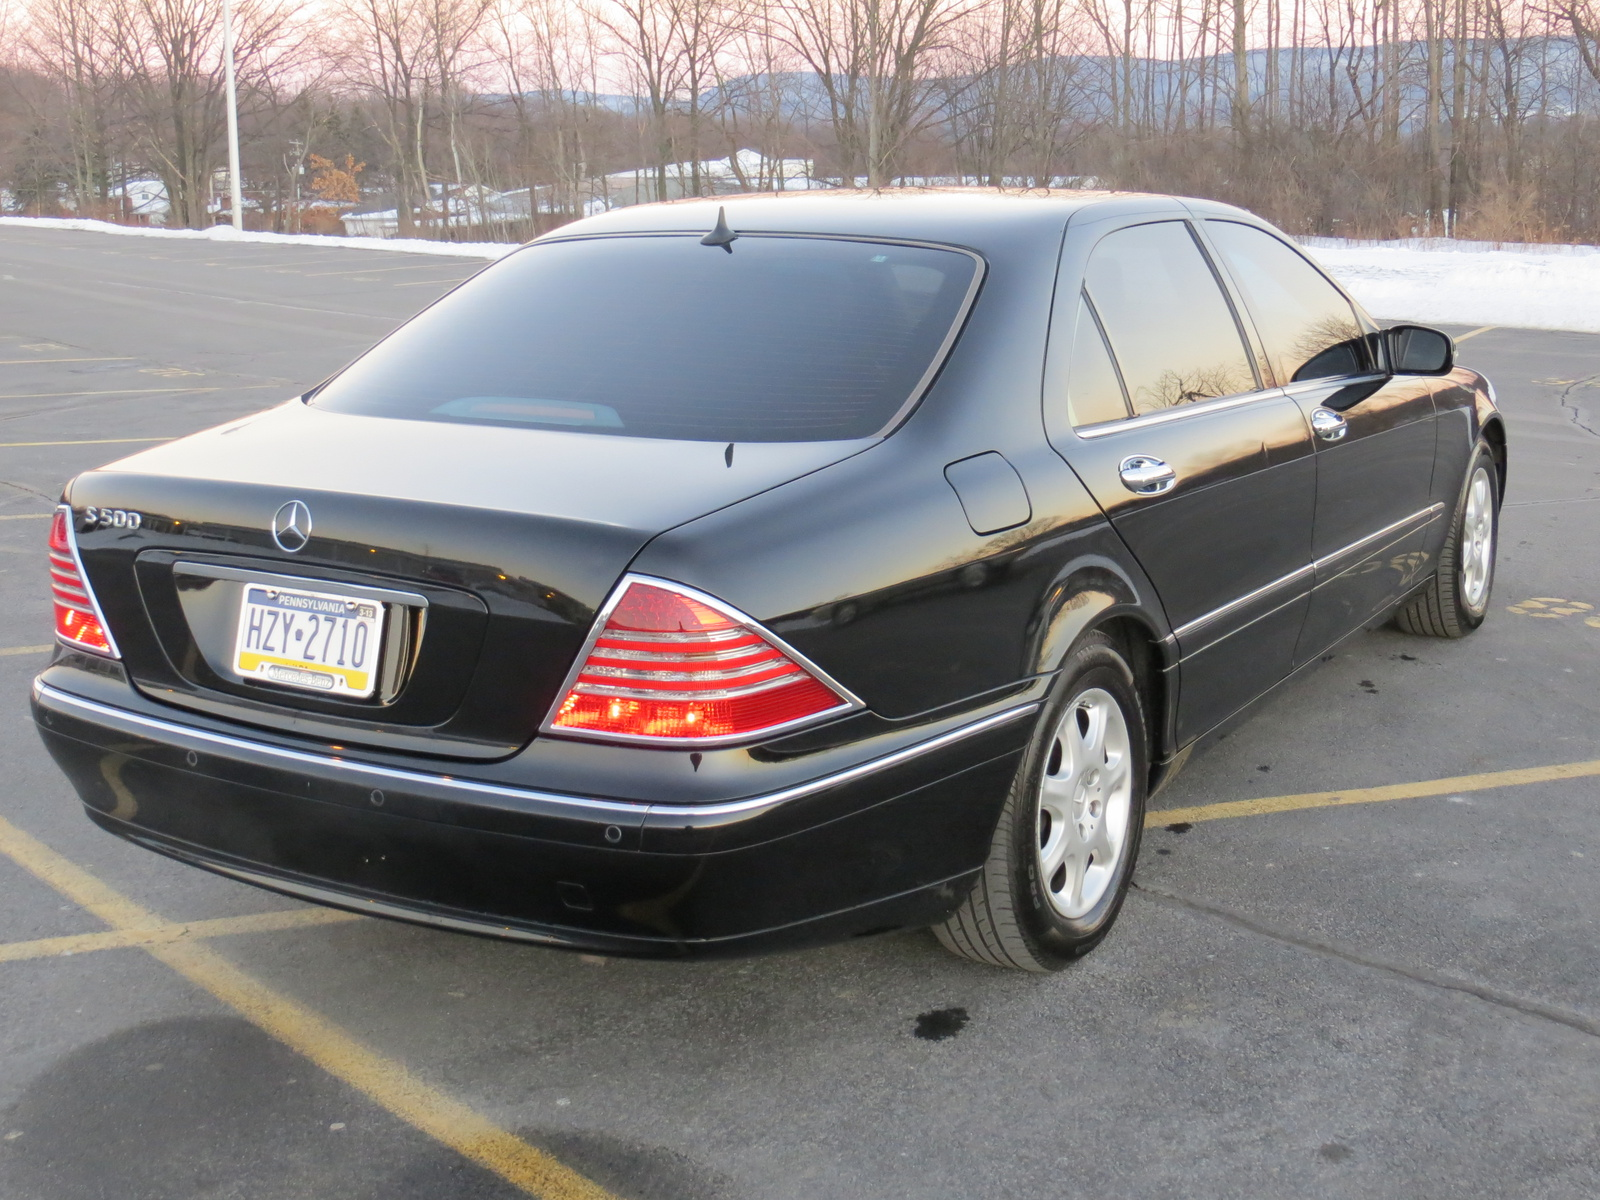 2000 mercedes benz s class exterior pictures cargurus for 2001 mercedes benz s500 specs